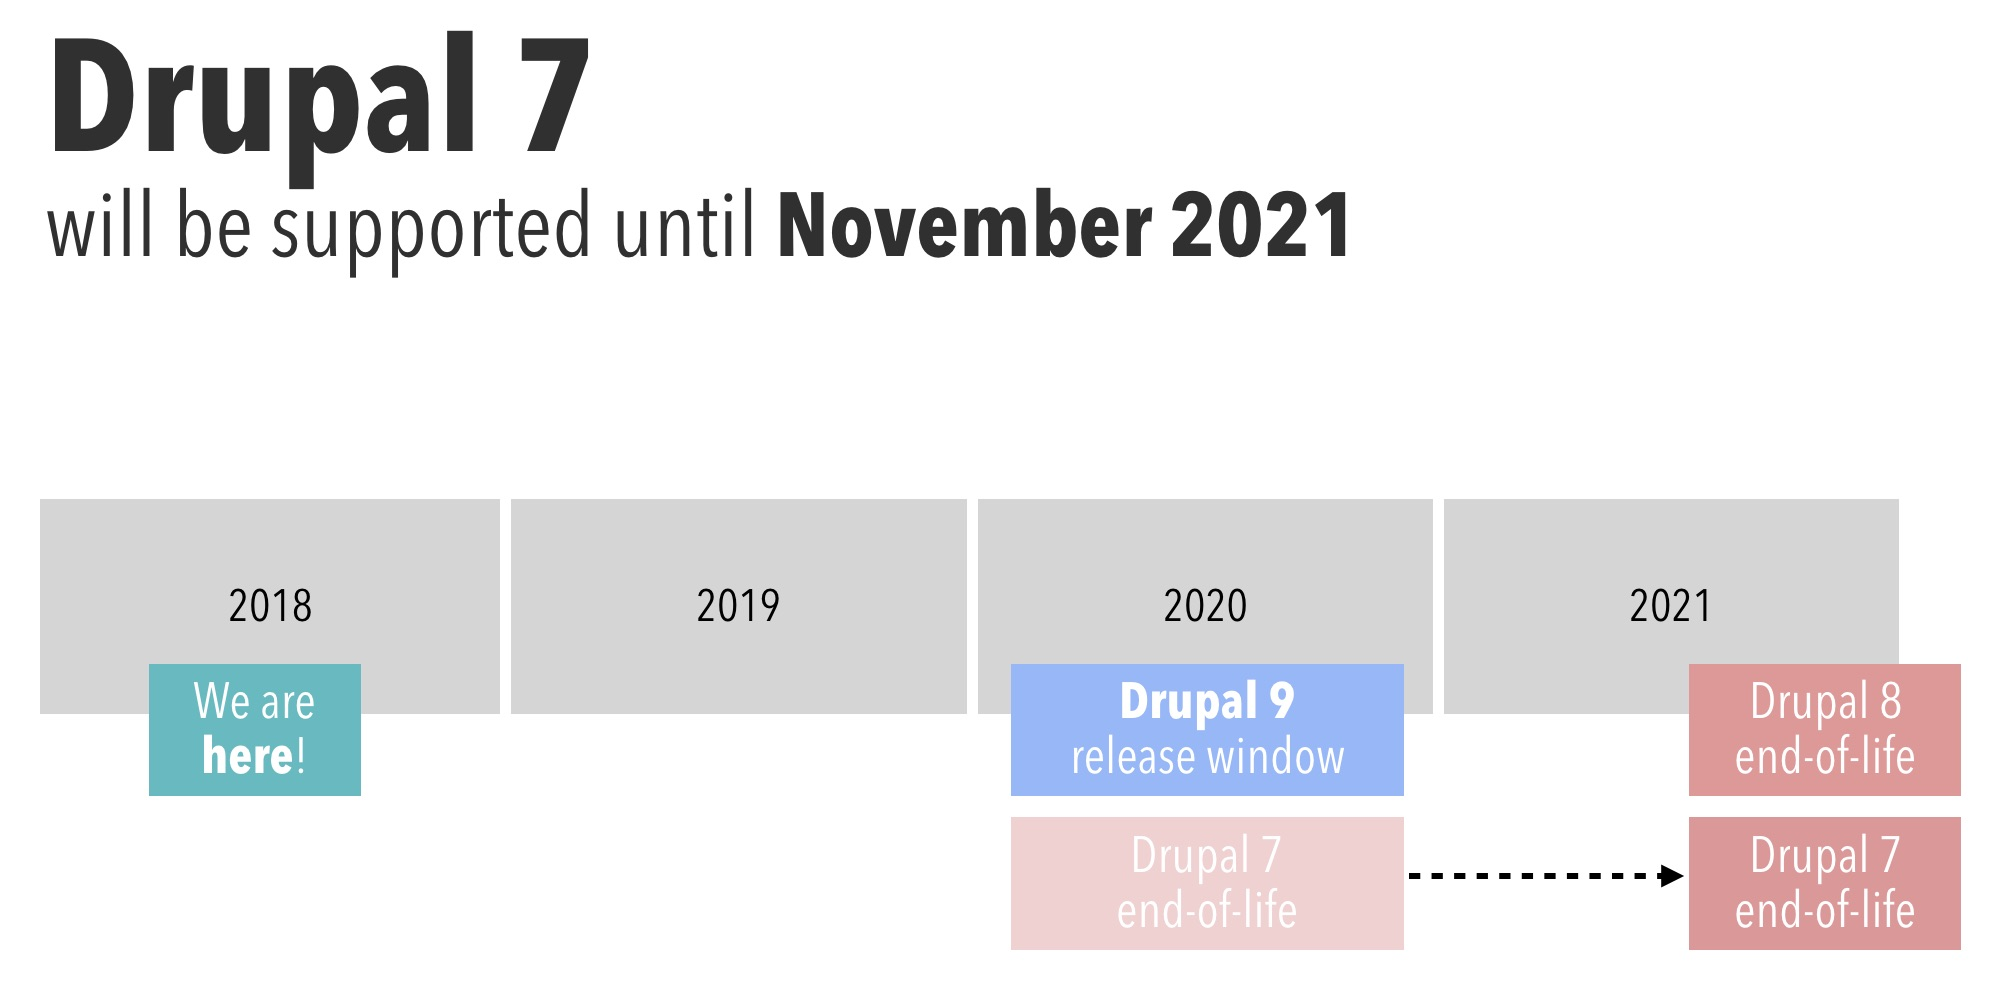 Drupal 8 and 7 end-of-life roadmap and Drupal 9 release window